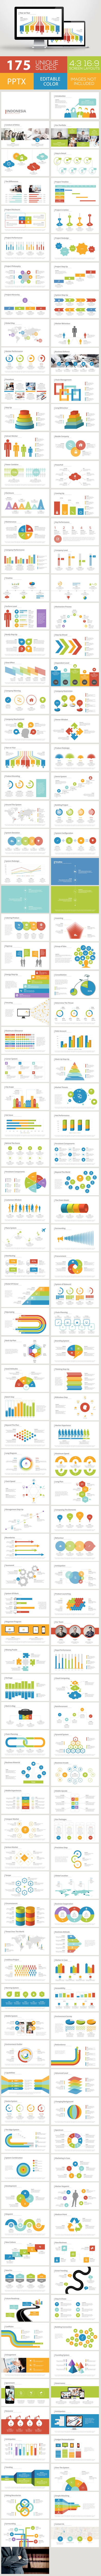 GraphicRiver Indonesia Powerpoint 8824861